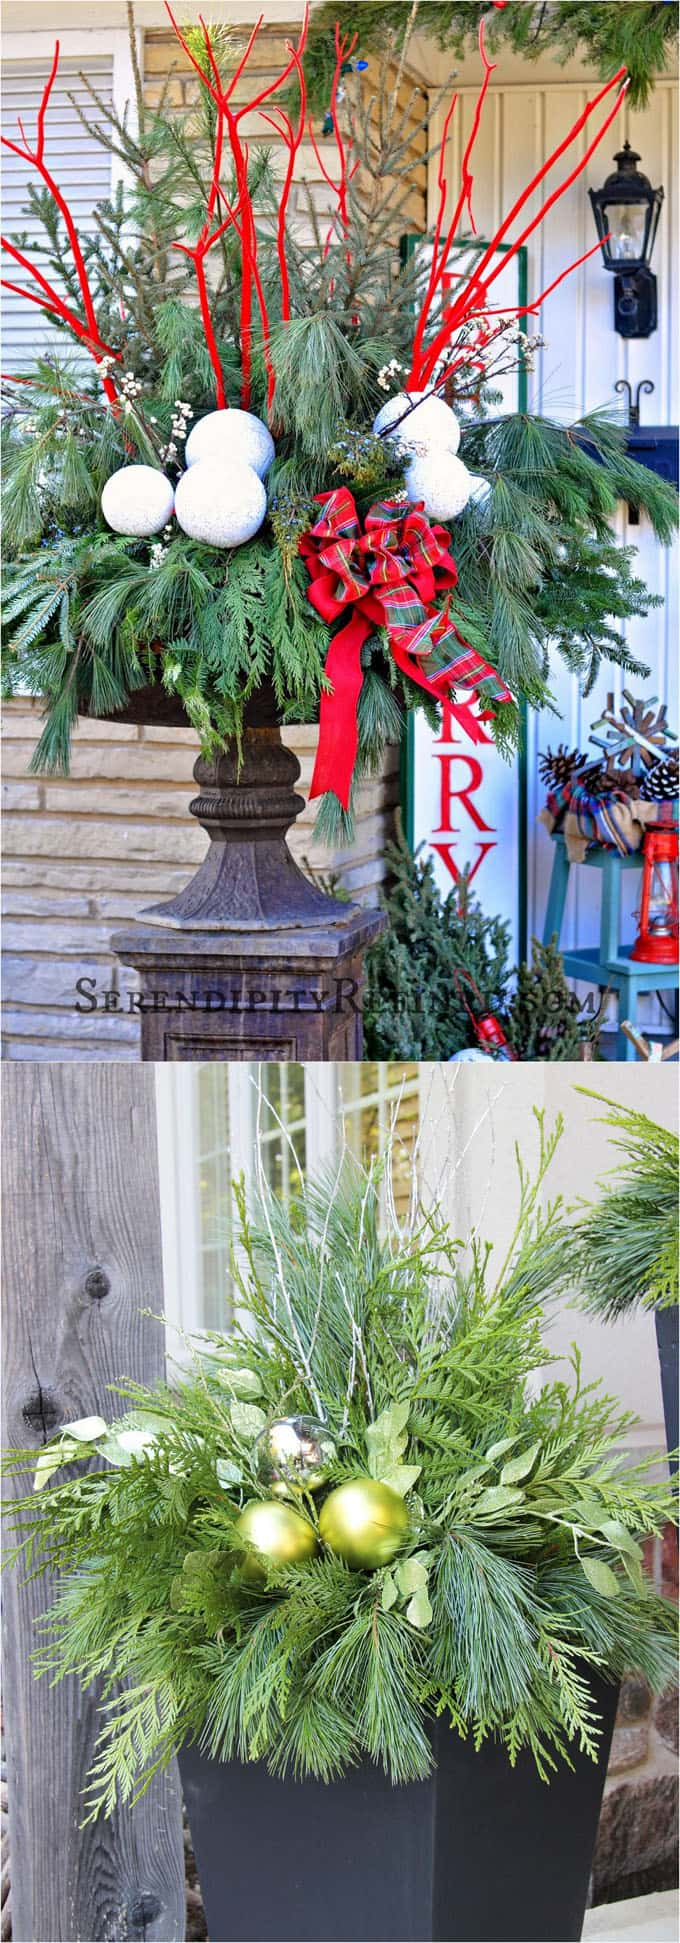 24 Stunning Christmas pots and planters to DIY for almost free! How to create colorful winter planters as beautiful Christmas outdoor decorations, with evergreens, berries, pinecones, branches, & creative elements! - A Piece of Rainbow #containergardening #planters #pots #plants #christmas #christmasdecorations #christmasideas #thanksgiving #holiday #gardens #patio #patiodesign #backyard #curbappeal #diy #gardening #gardeningtips #gardendesign #gardenideas #homedecor #homedecorideas